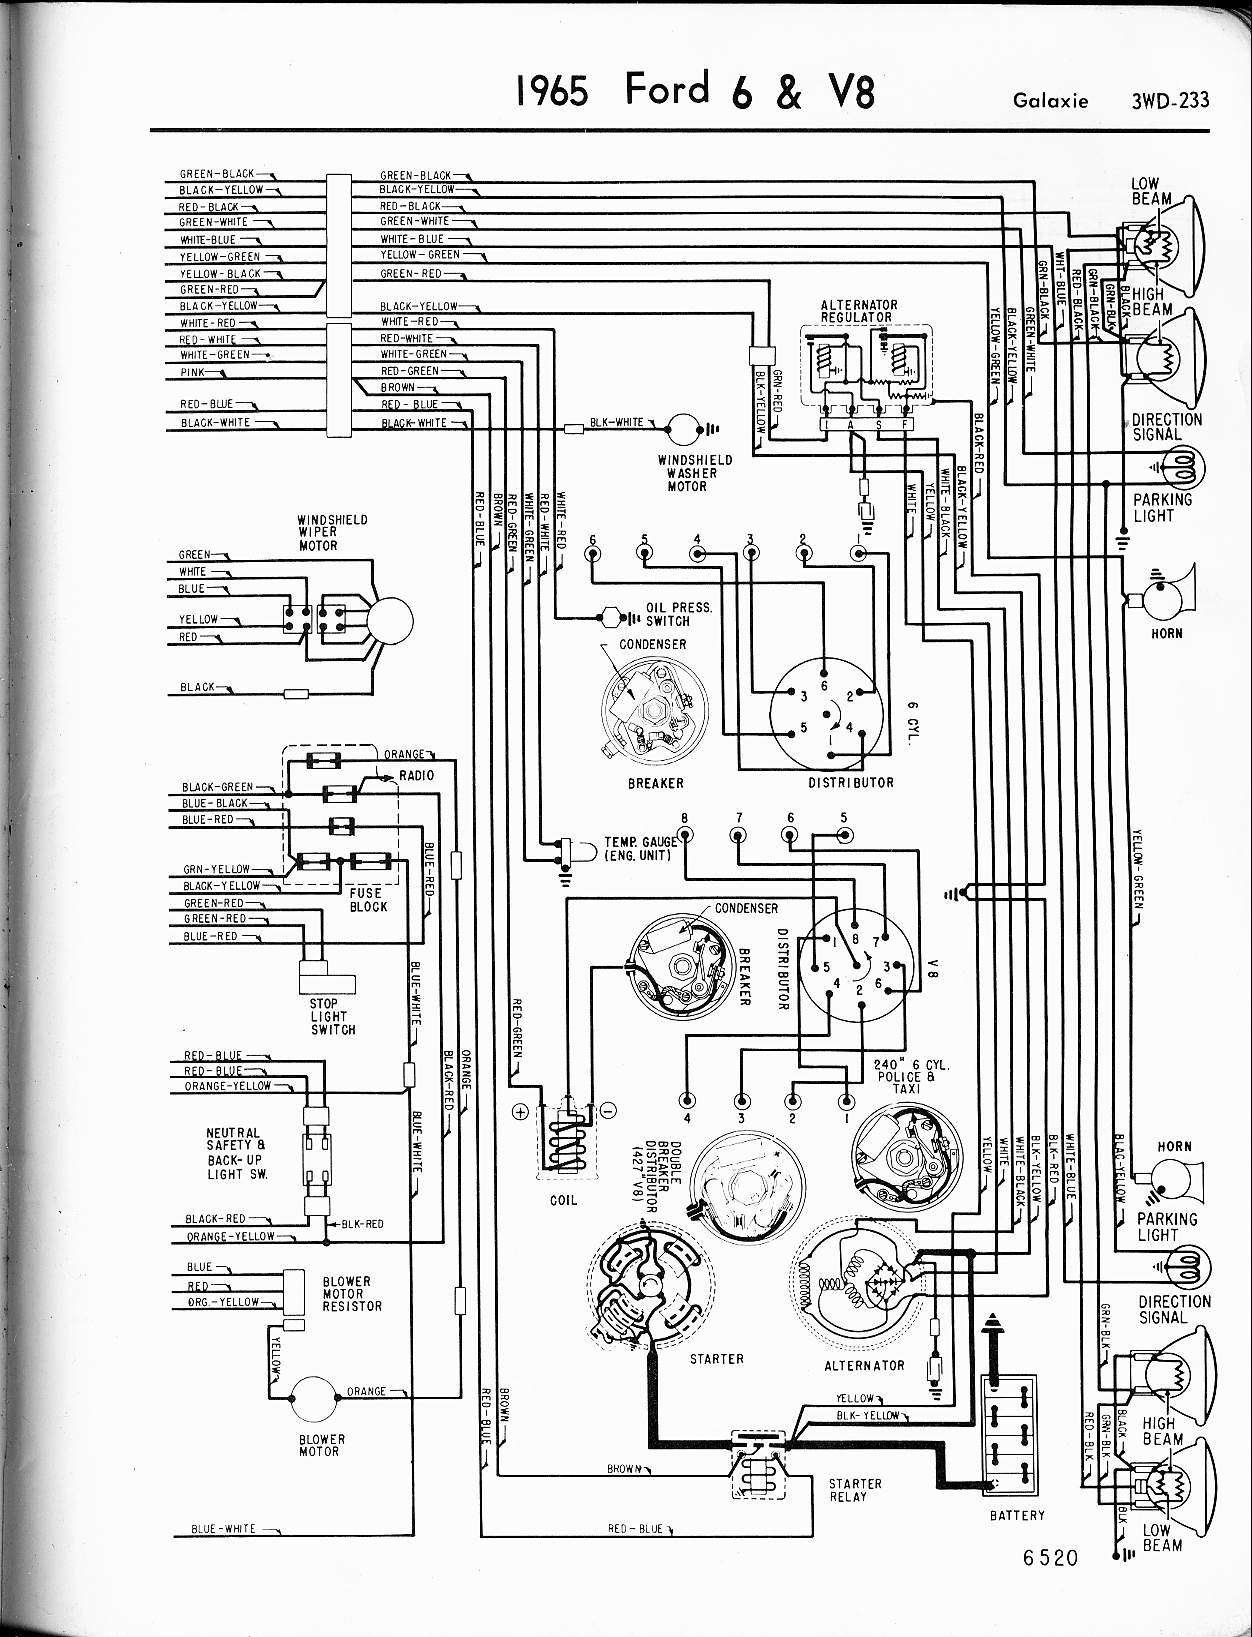 2007 ford focus radio wiring diagram